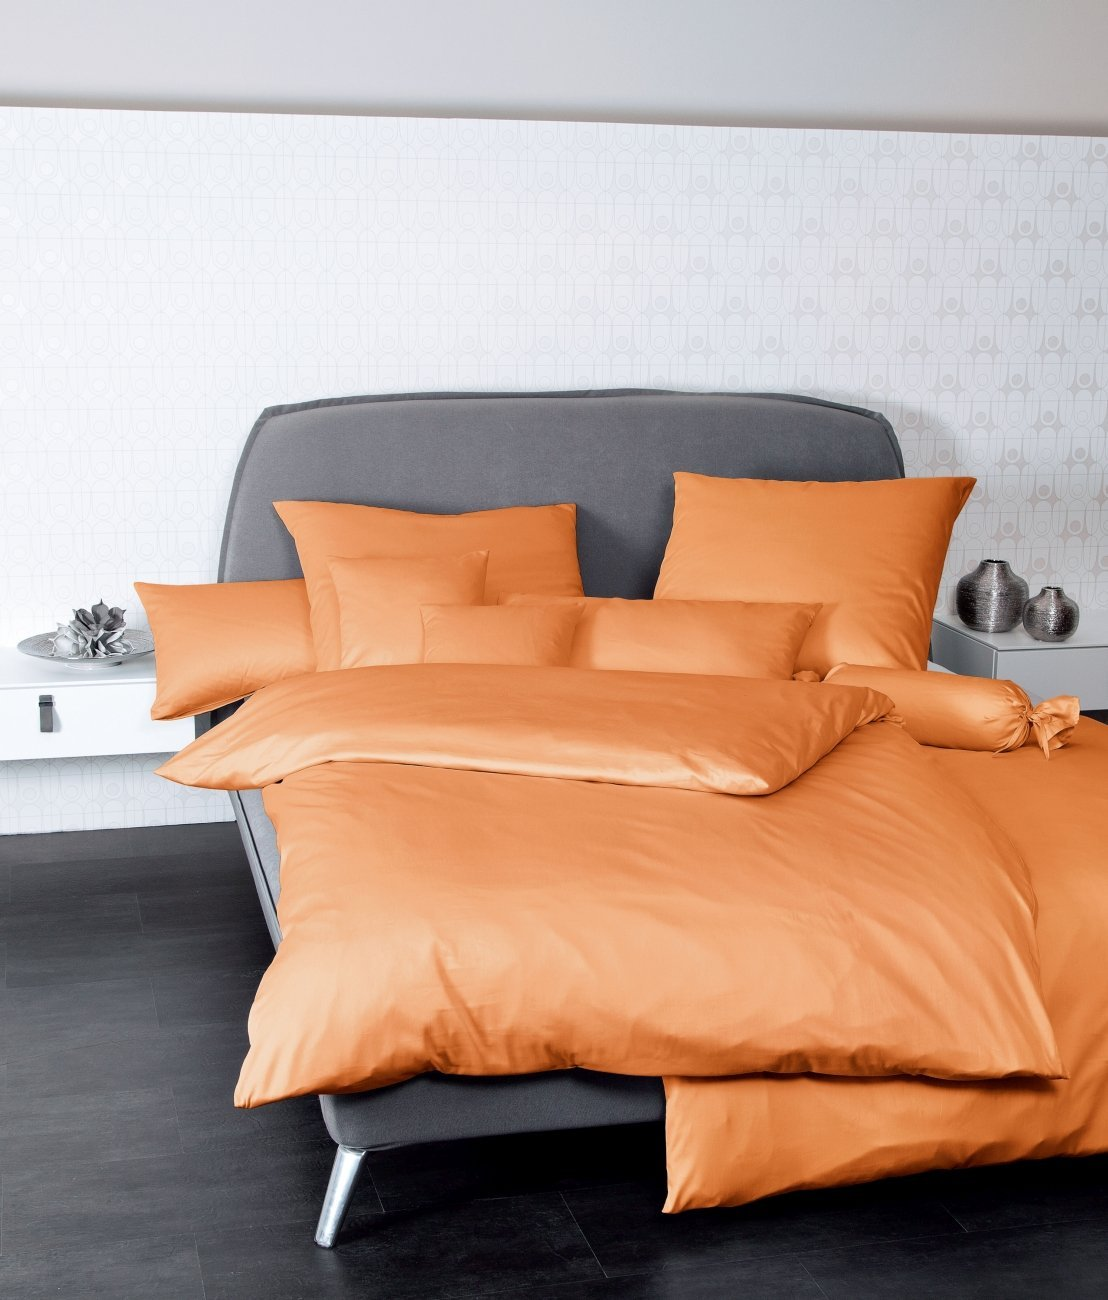 Janine Kissenbezug 40x40 UNI 100% BW Mako-Satin 31001-54 orange